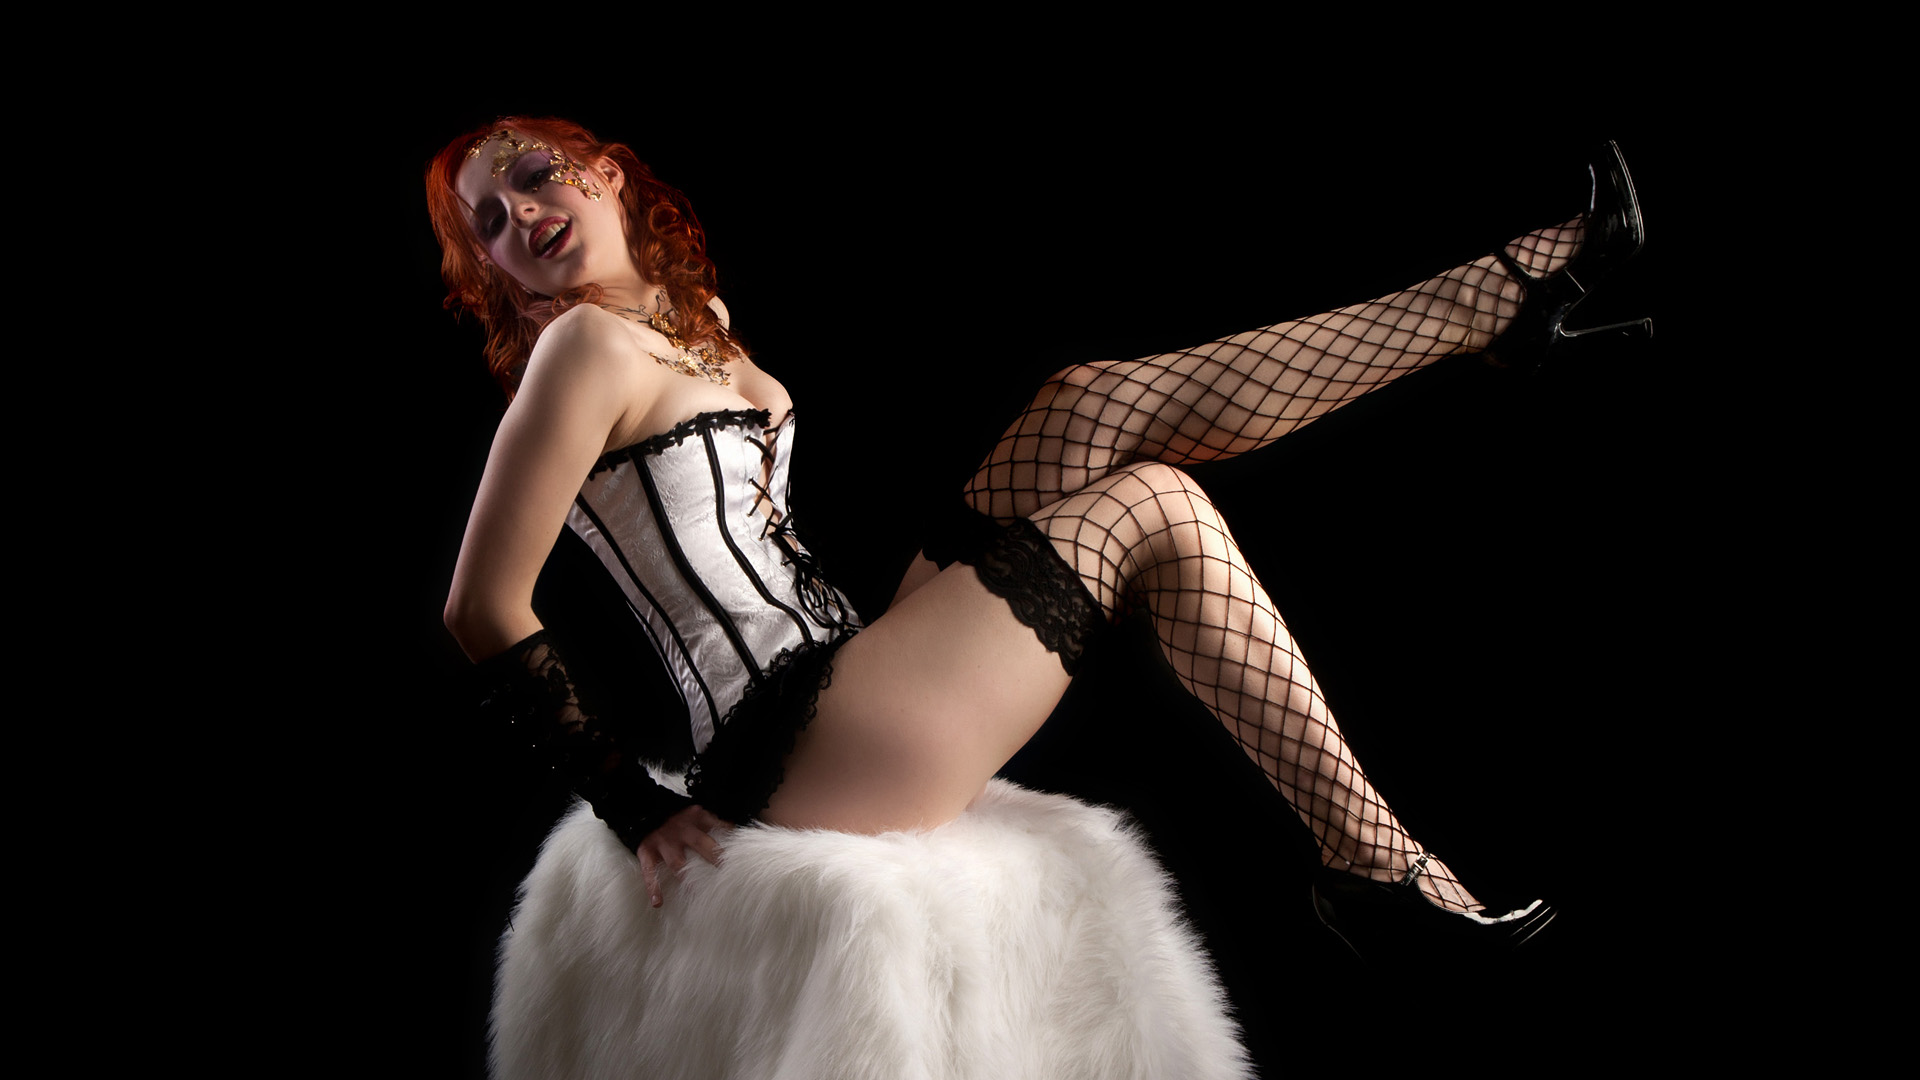 pinup-burlesque-photography